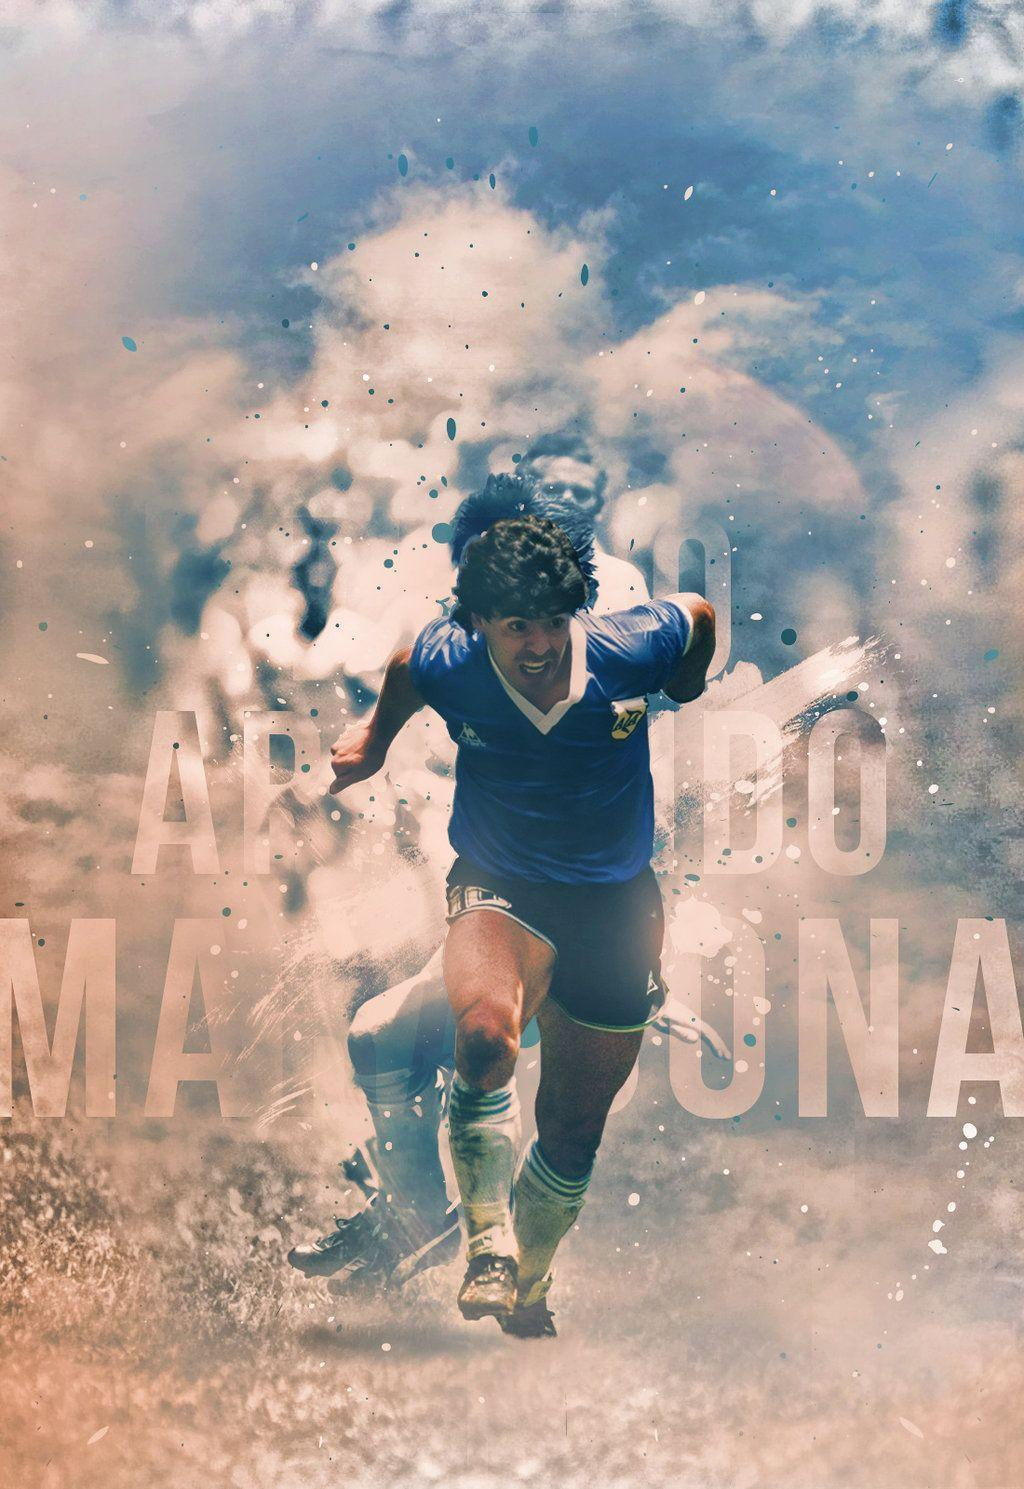 Maradona wallpapers – wallpapers free download